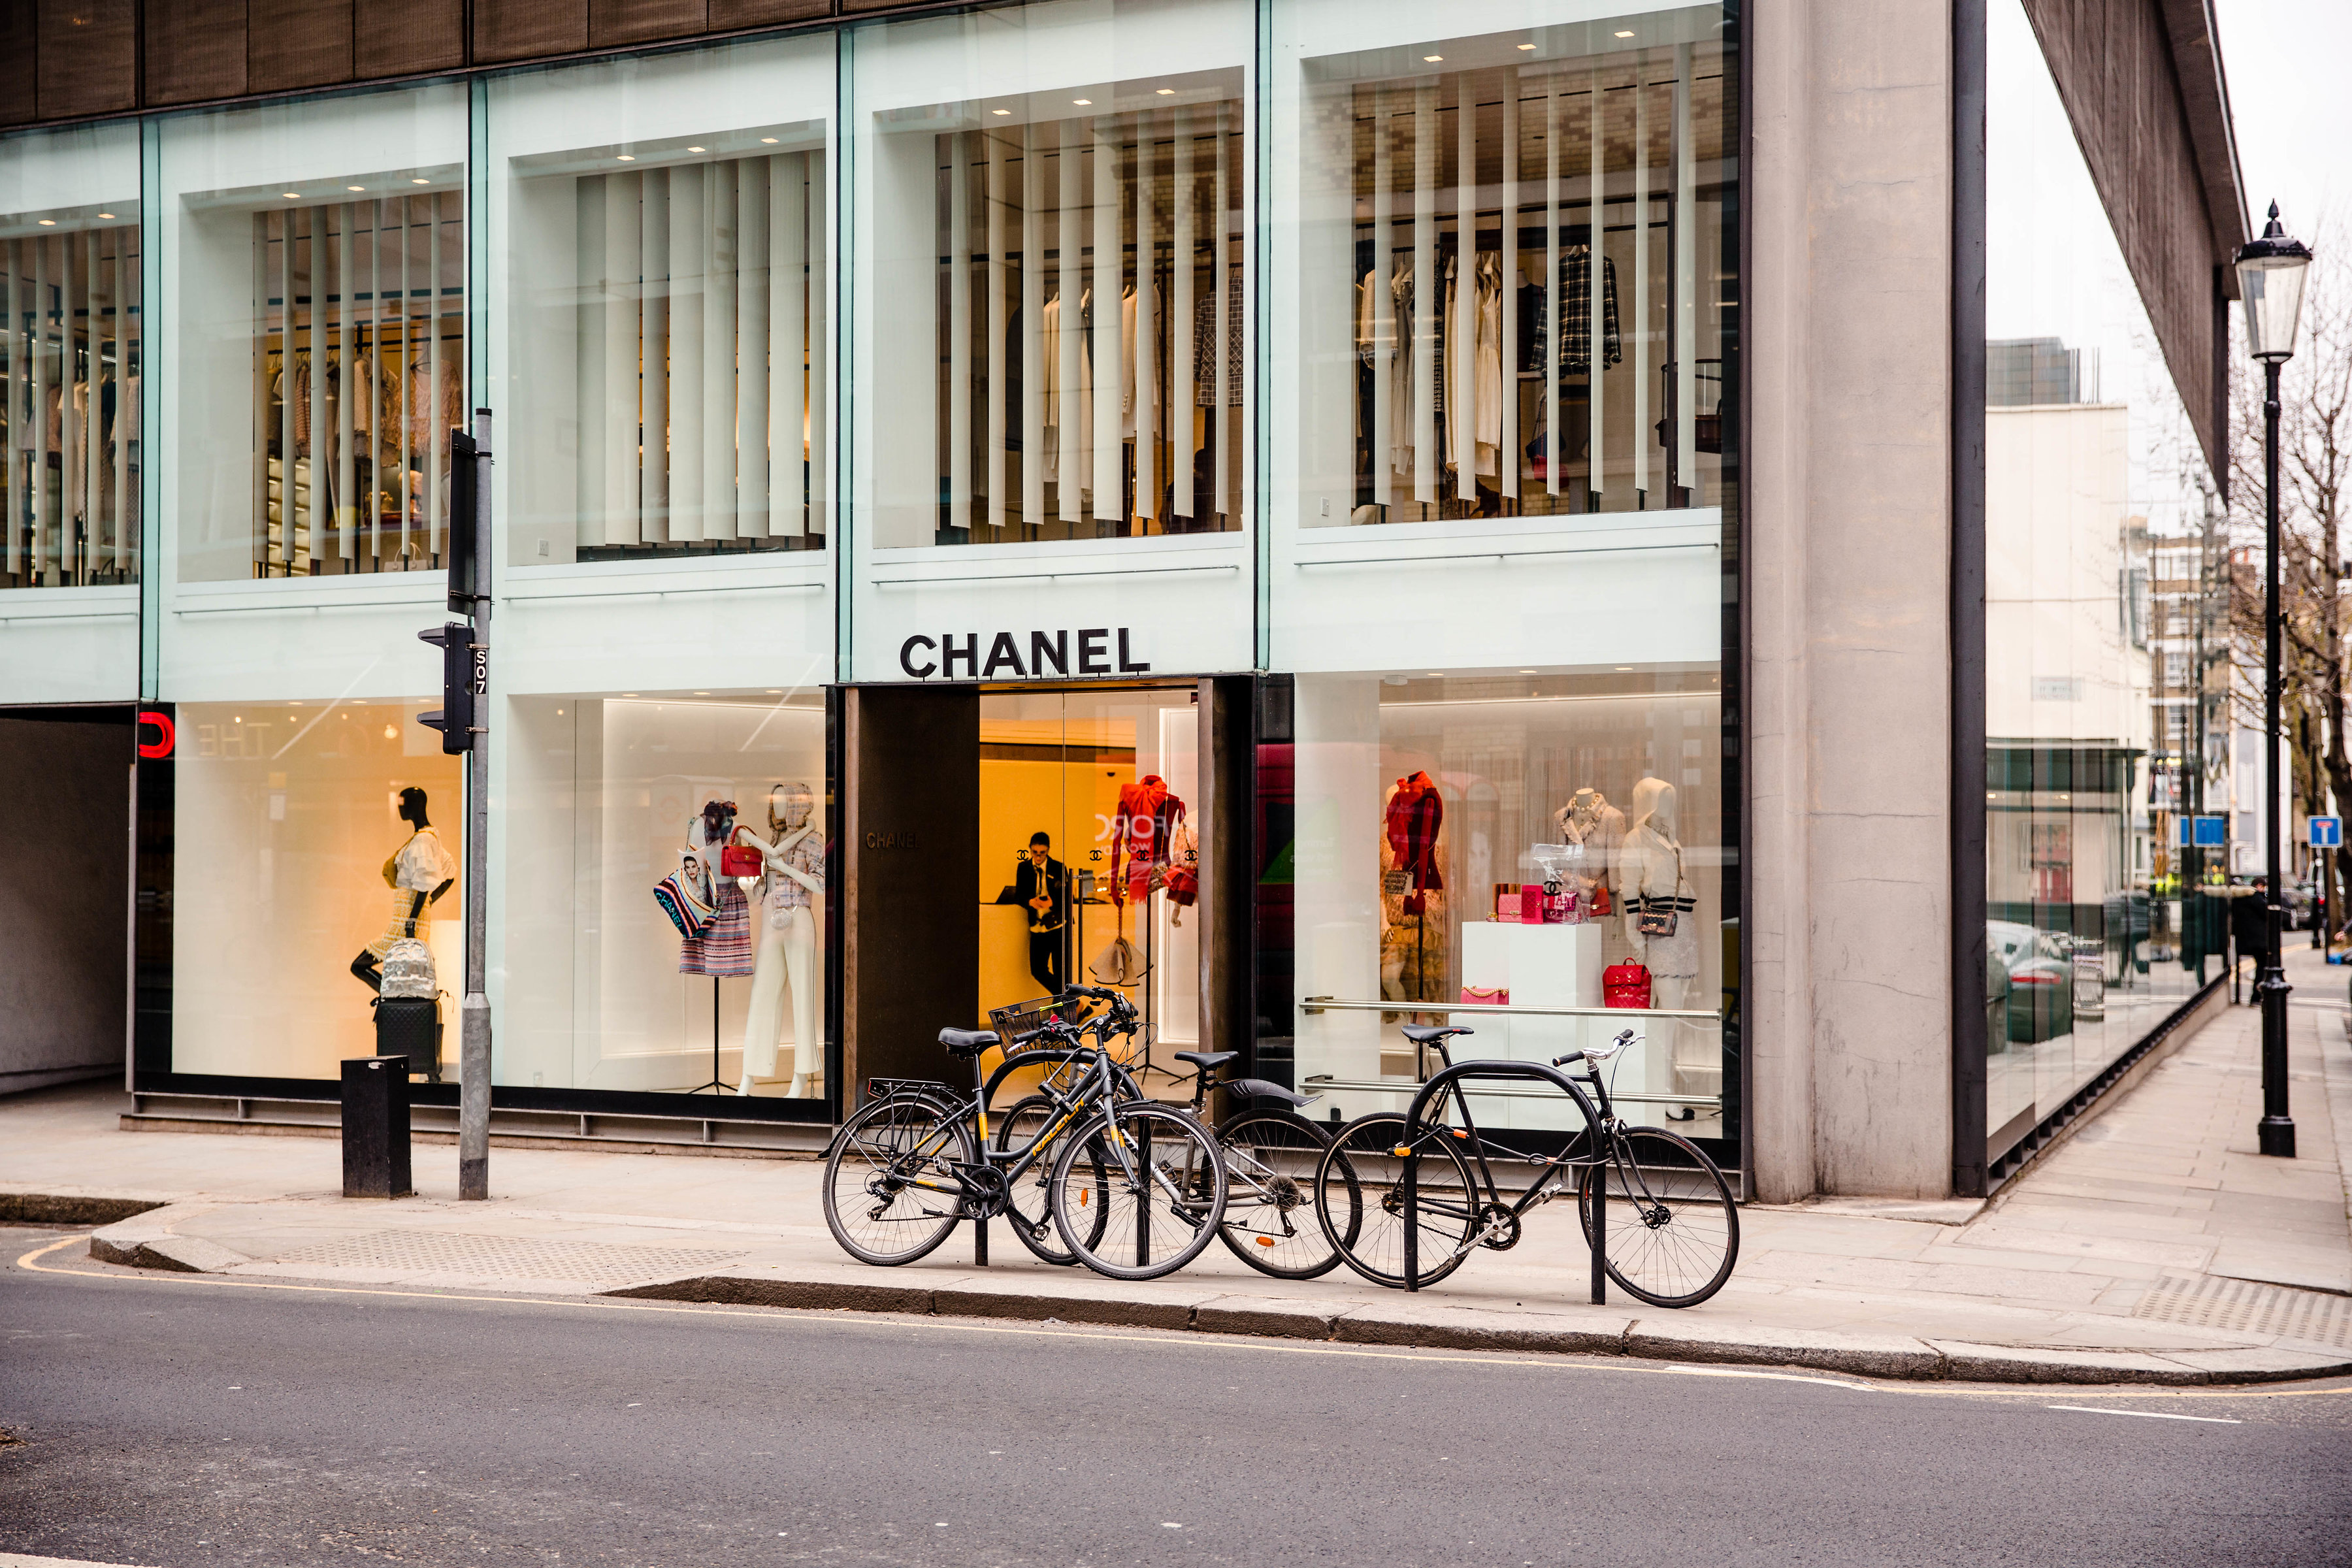 The temporary Chanel store